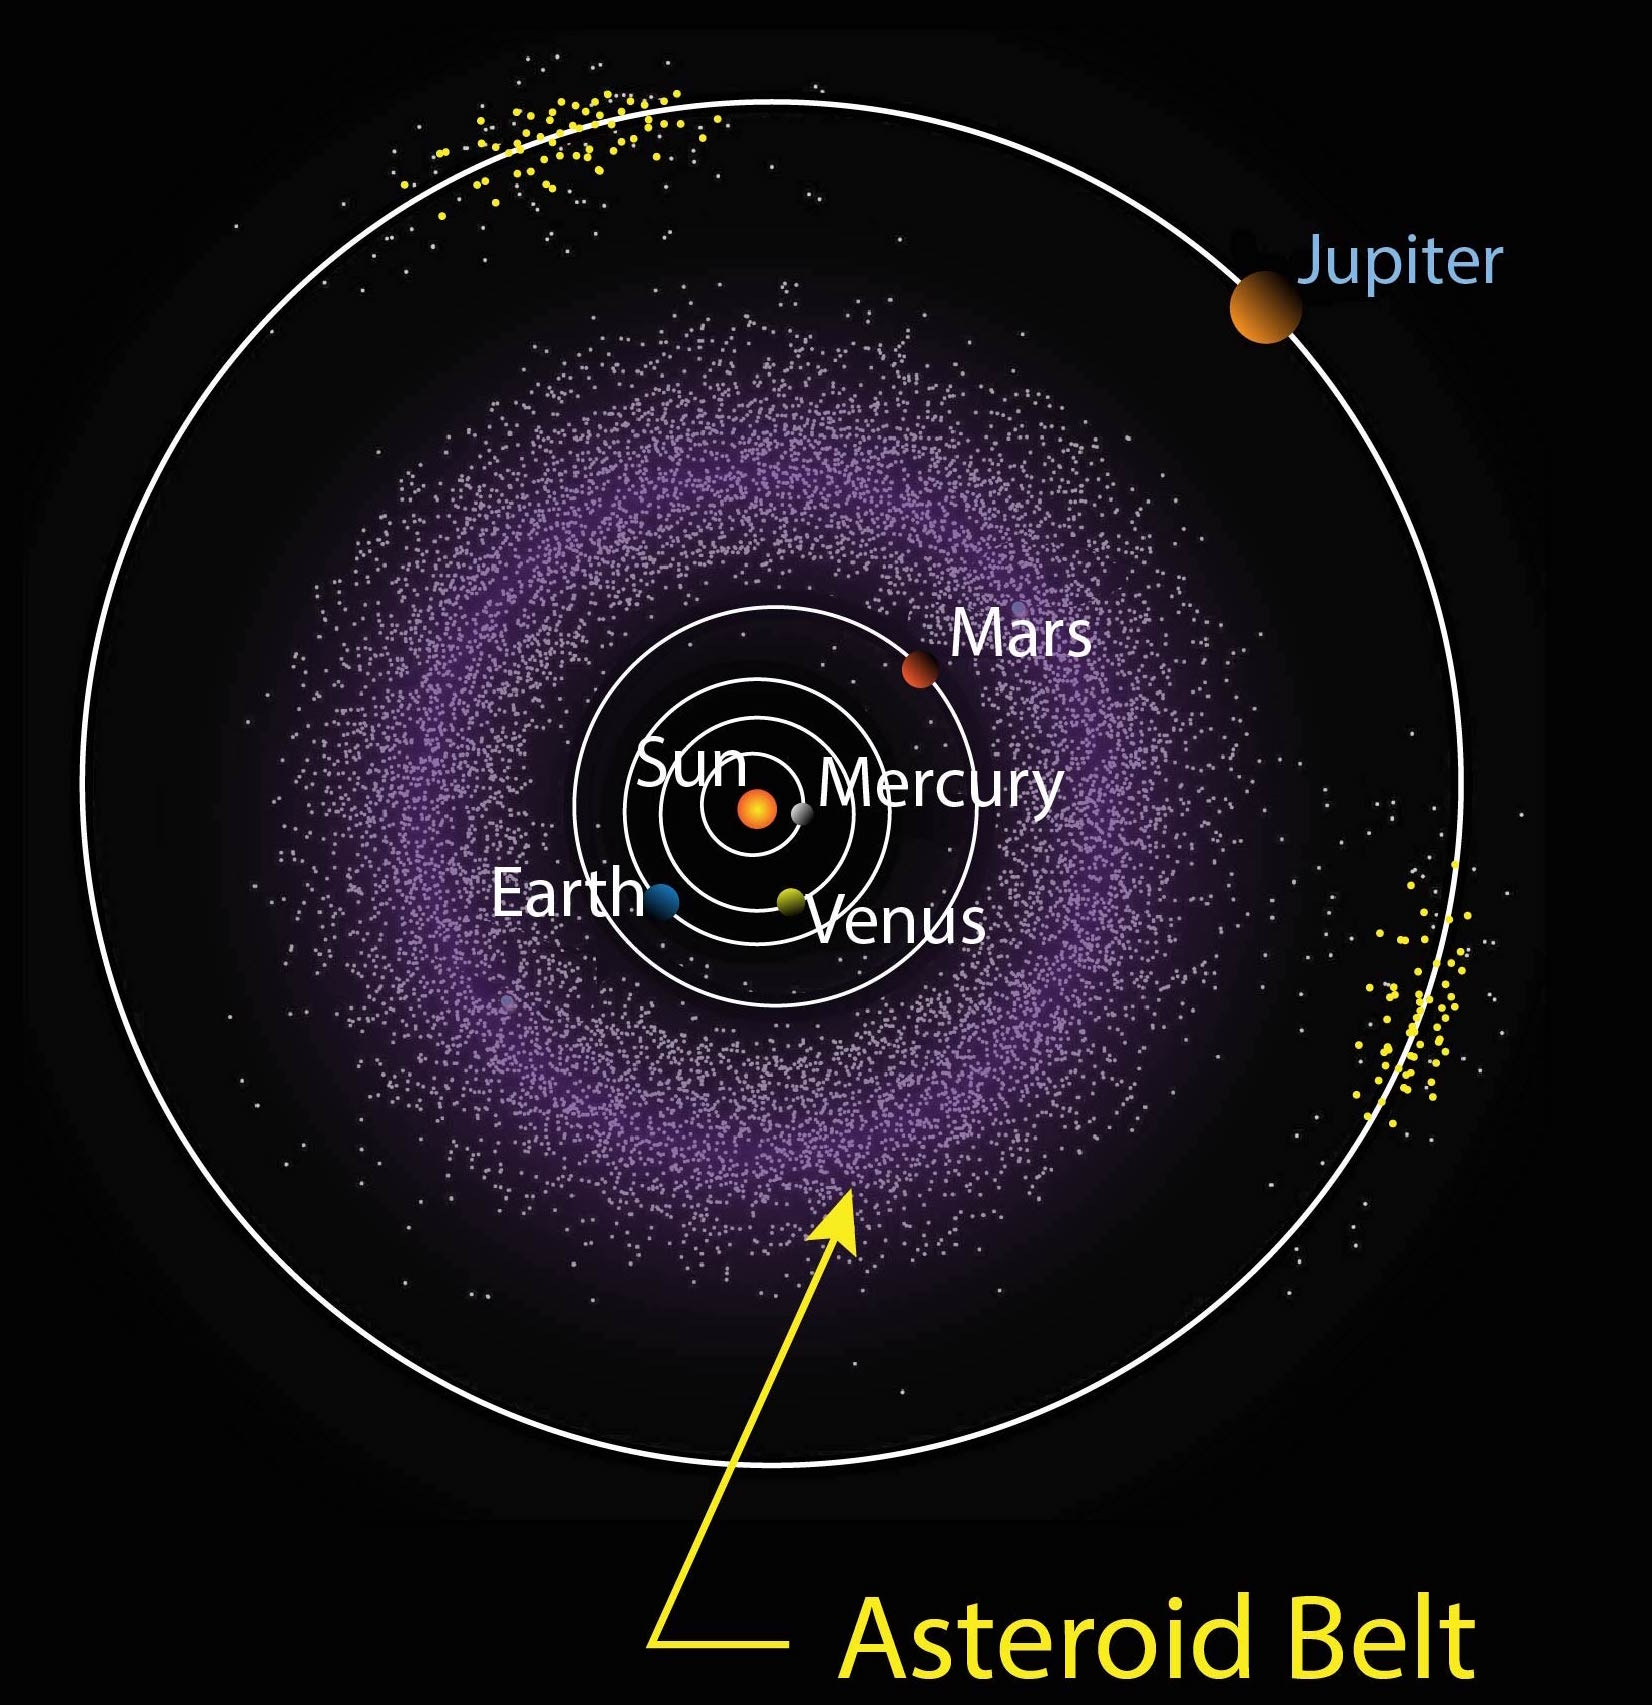 asteroid belt Although their location in the asteroid belt excludes them from planet status, the three largest objects, ceres, vesta, and pallas, are intact protoplanets that share many characteristics common to planets, and are atypical compared to the majority of potato-shaped asteroids.